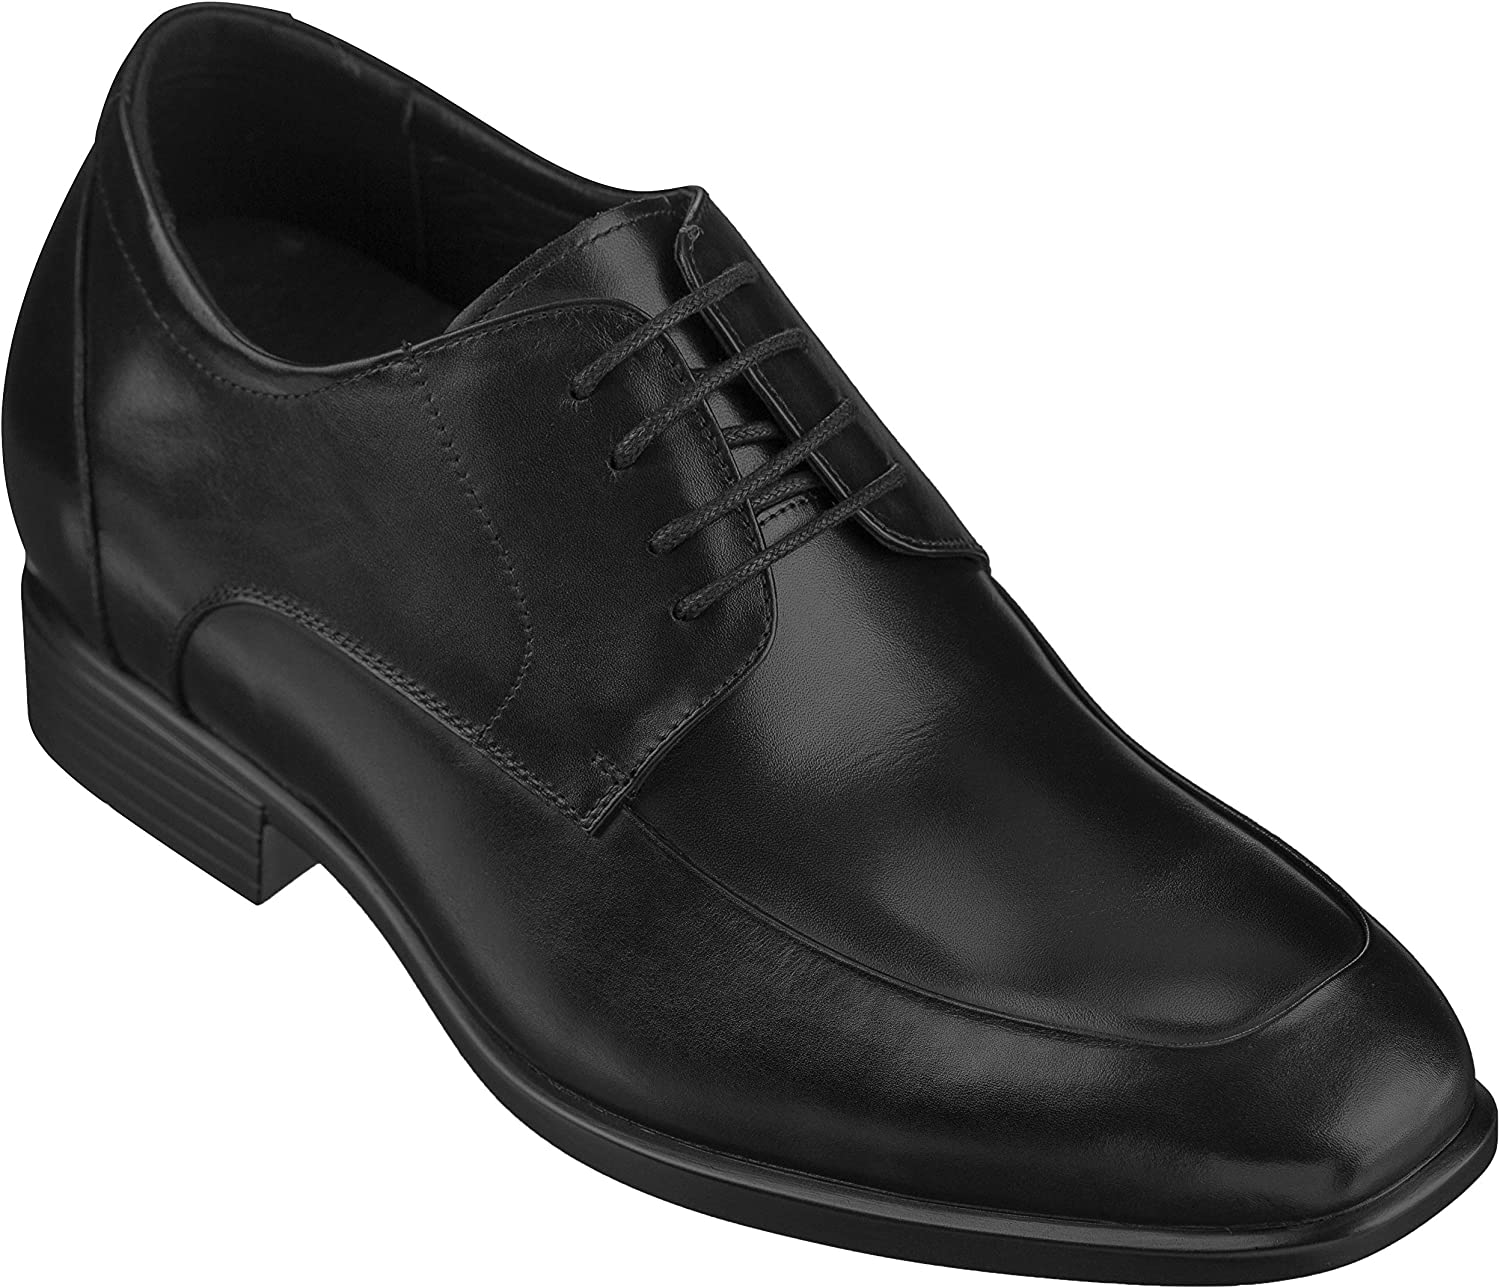 CALTO Men's Invisible Height Increasing Elevator shoes - Black Premium Leather Lace-up Lightweight Formal Oxfords - 3.2 Inches Taller - Y4091